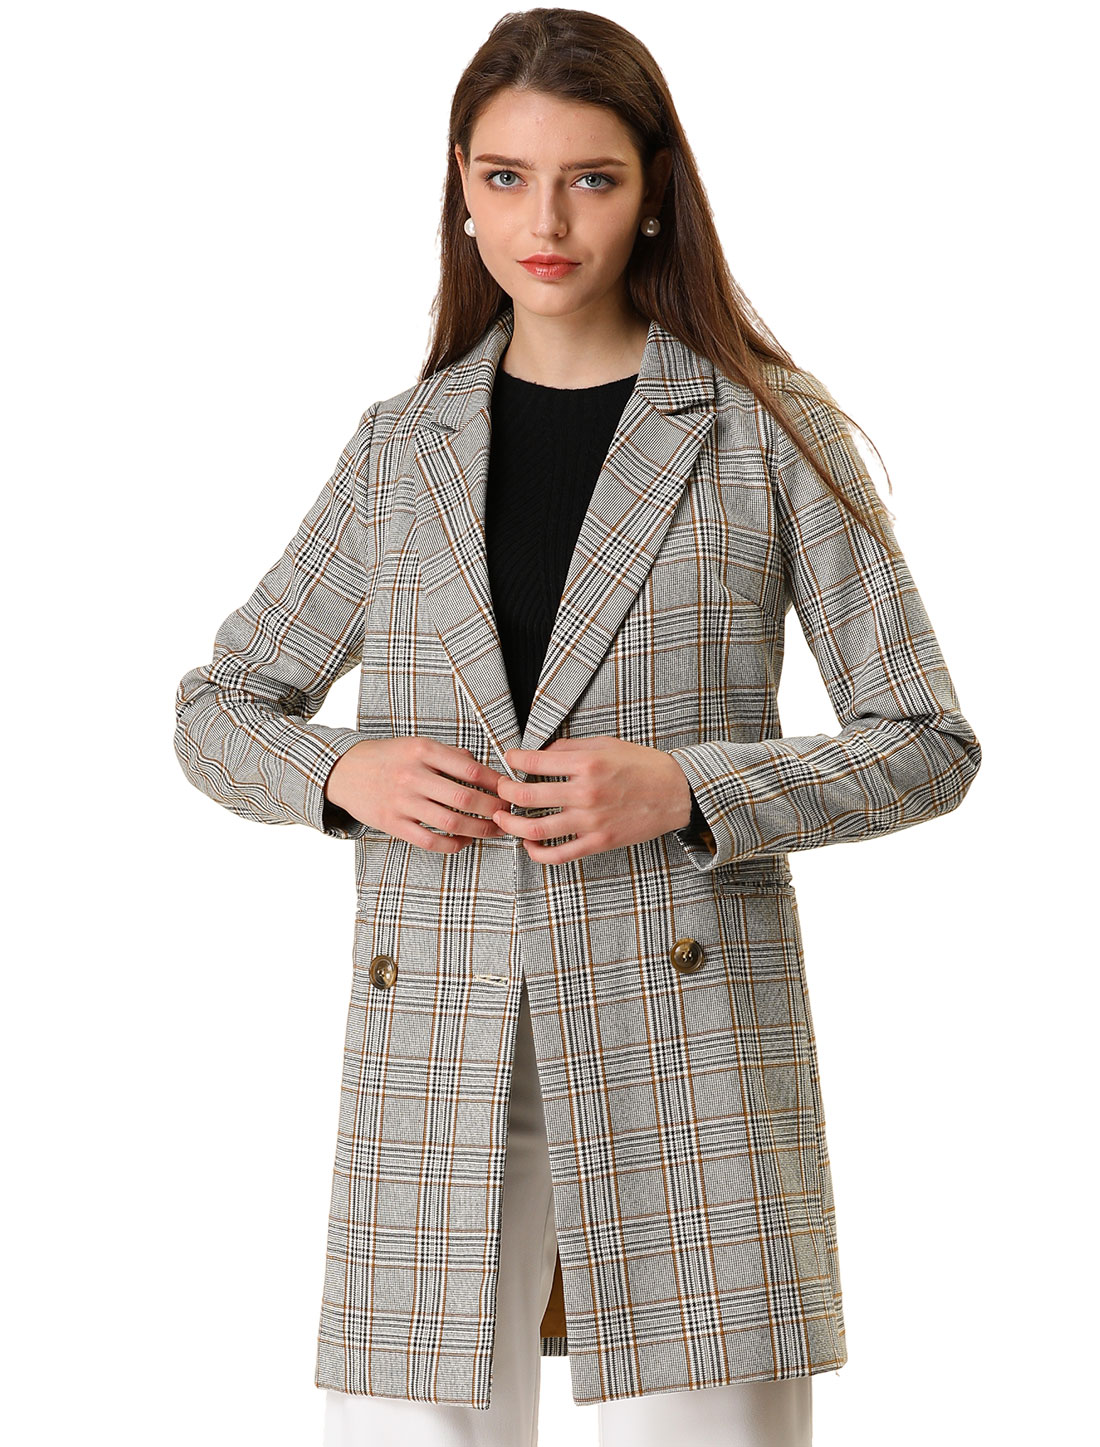 Women's Double Breasted Plaid Check Outwear Jacket Coat Gray Khaki XS